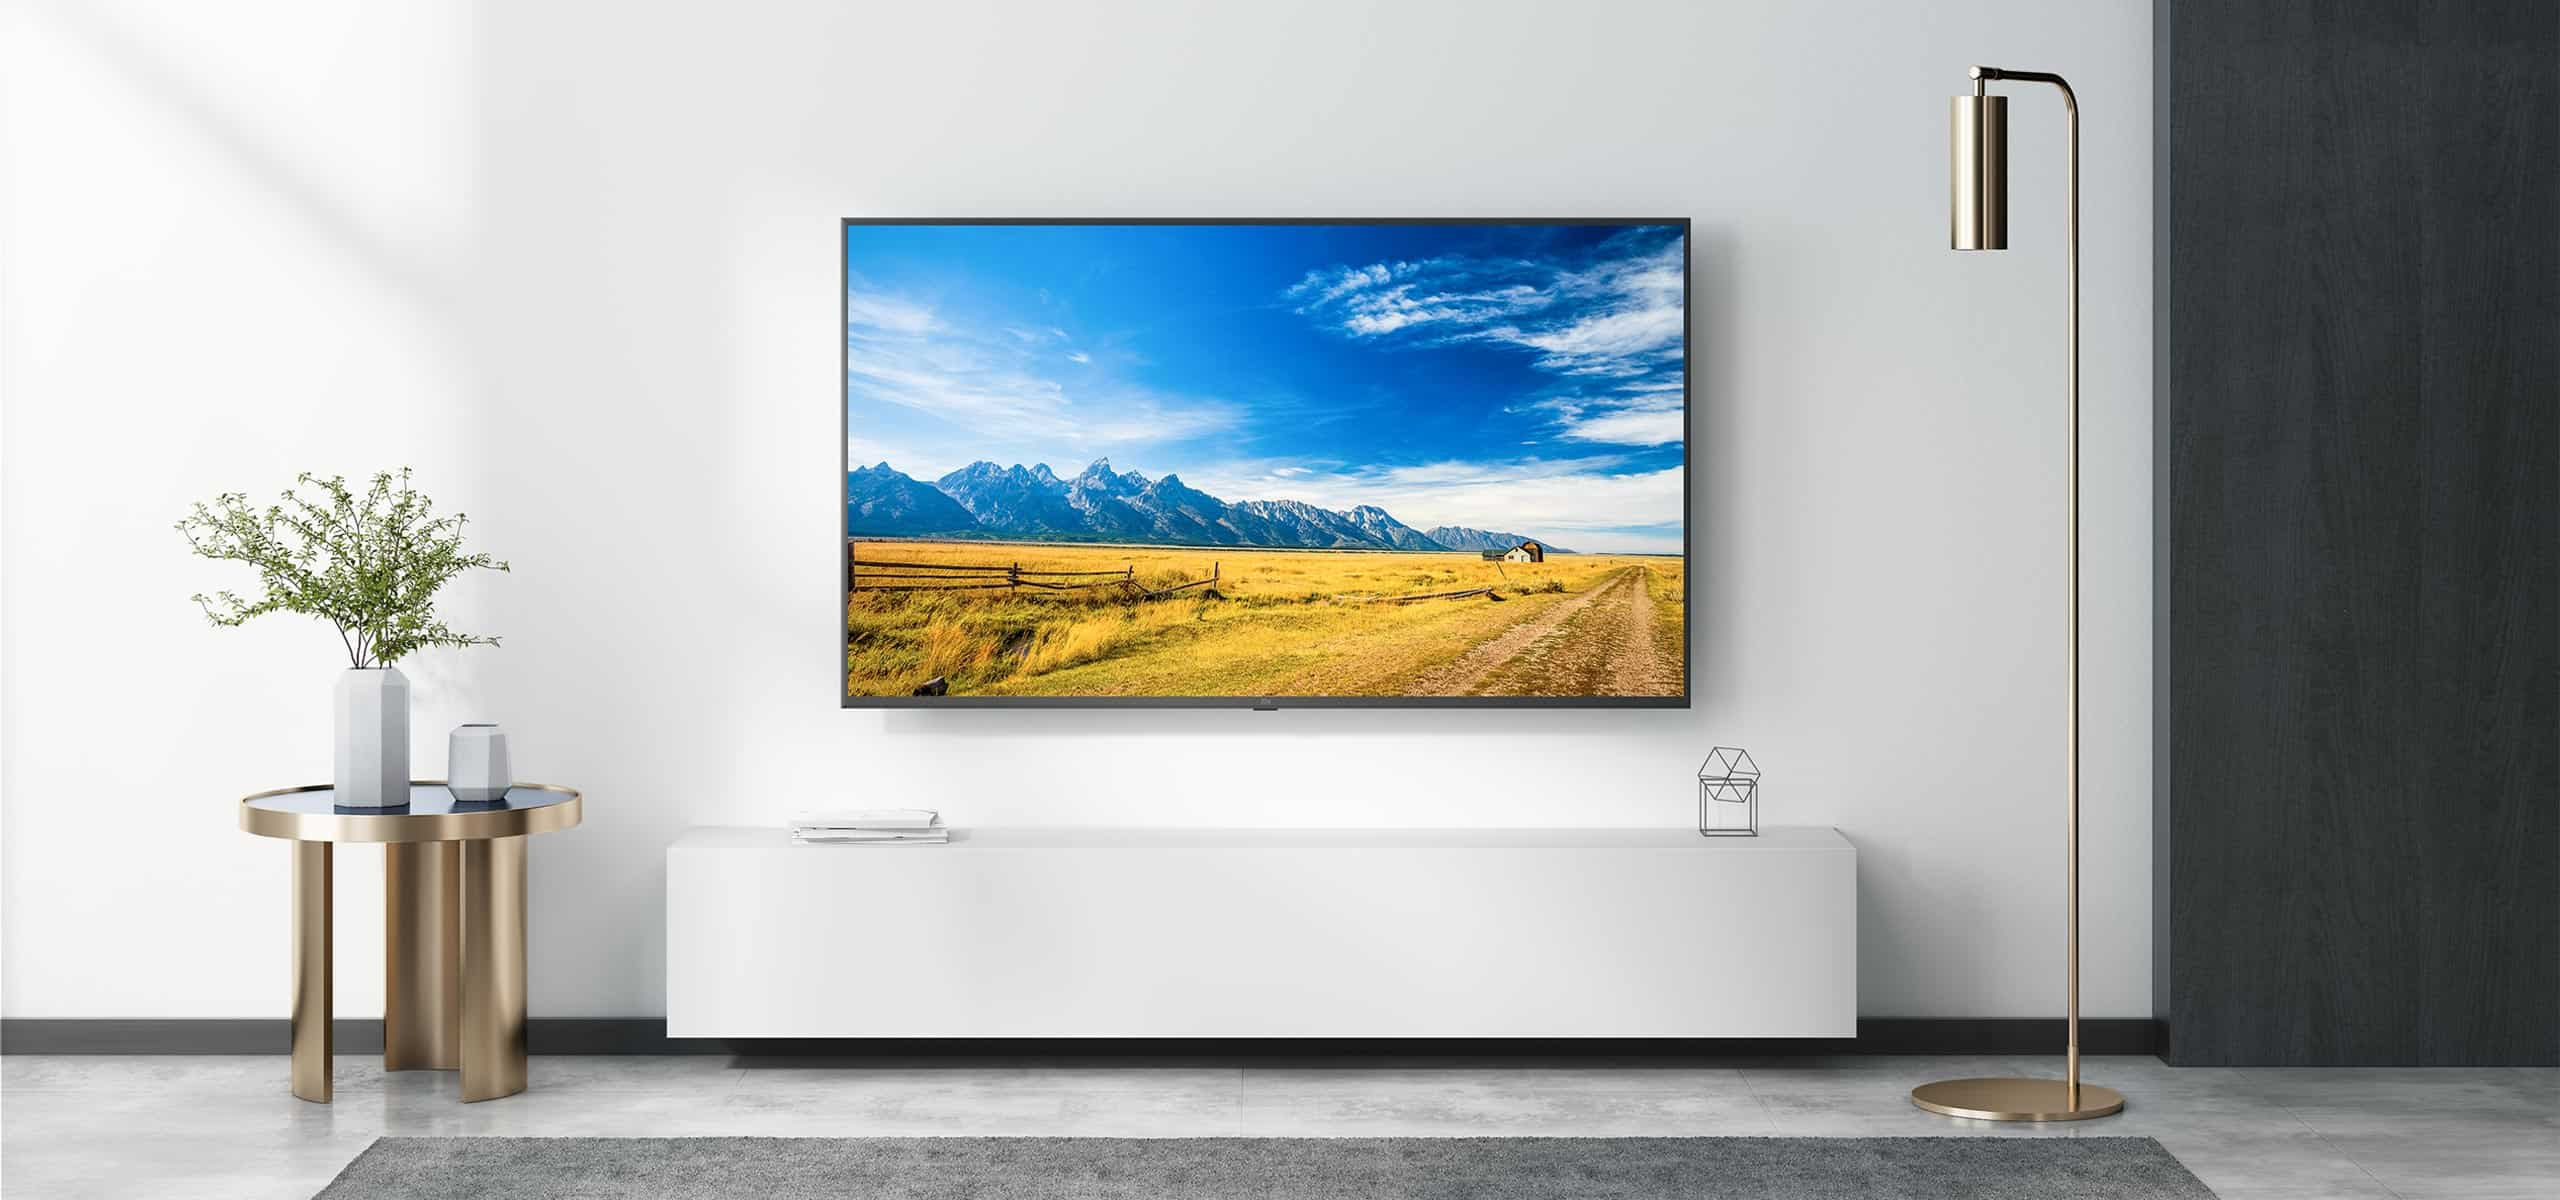 Xiaomi to introduce Video Calling feature for Xiaomi TVs via Video Call App